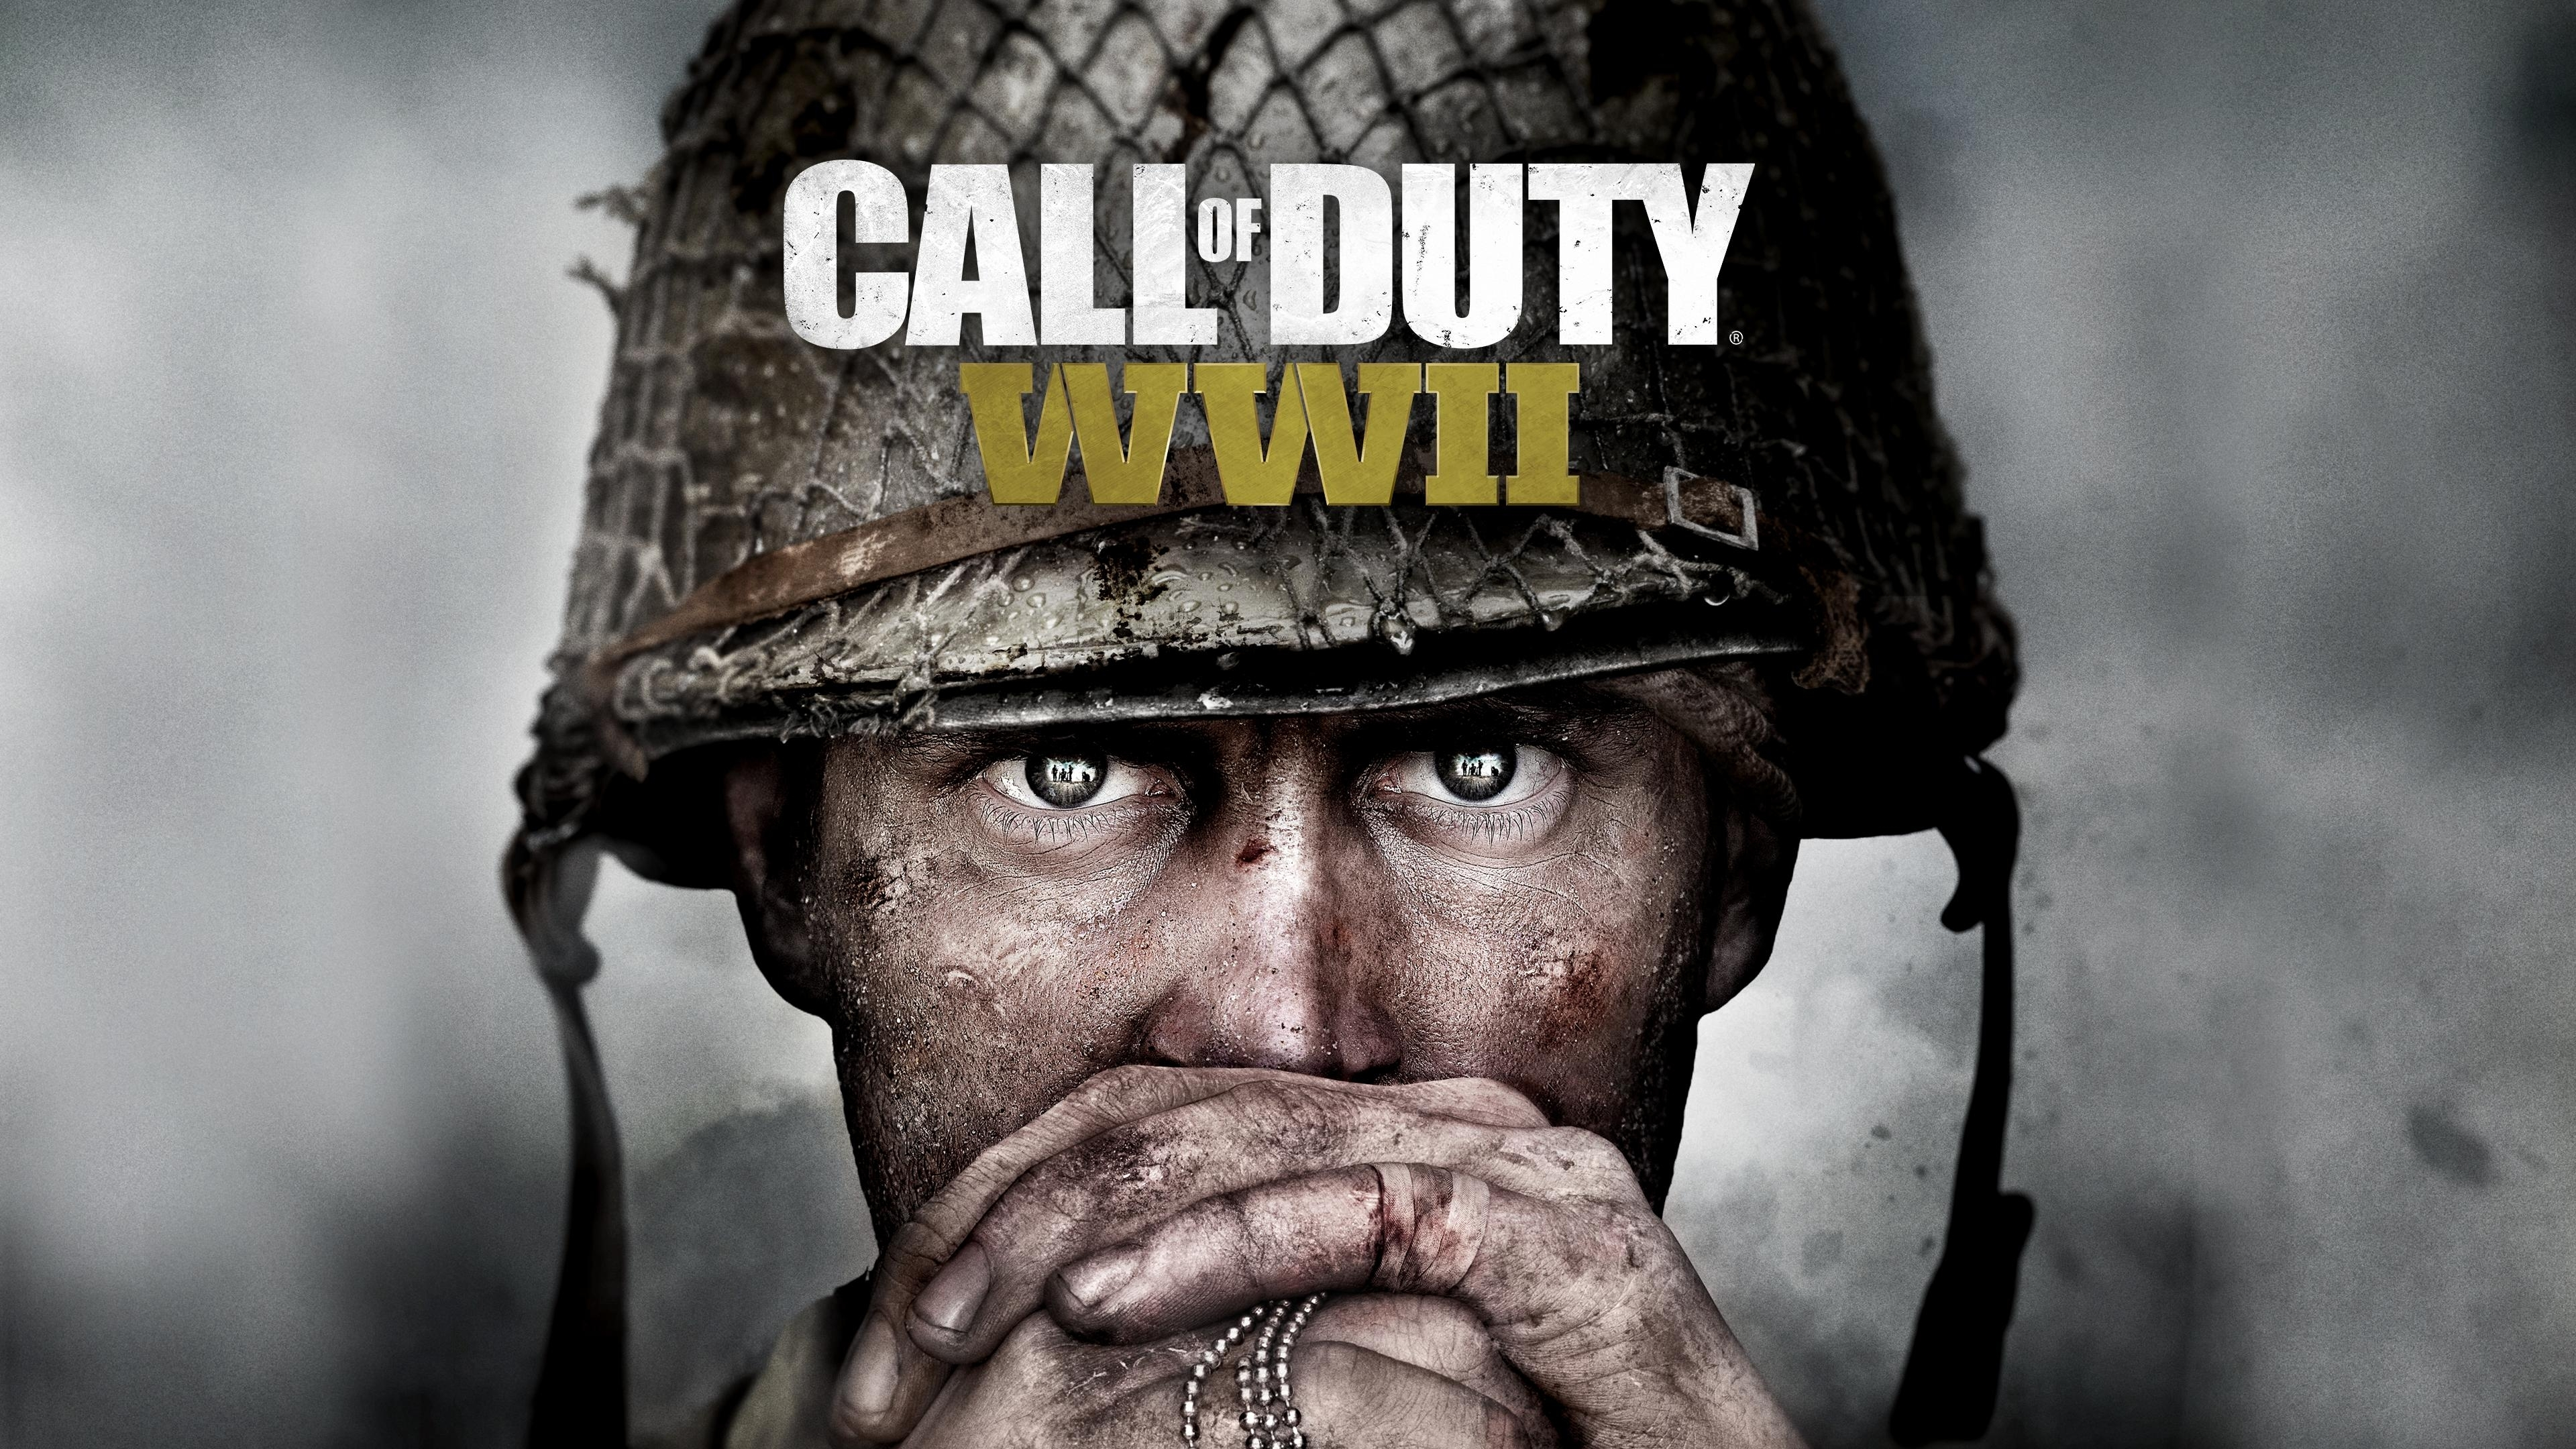 wallpaper call of duty wwii, 4k, games, #7364